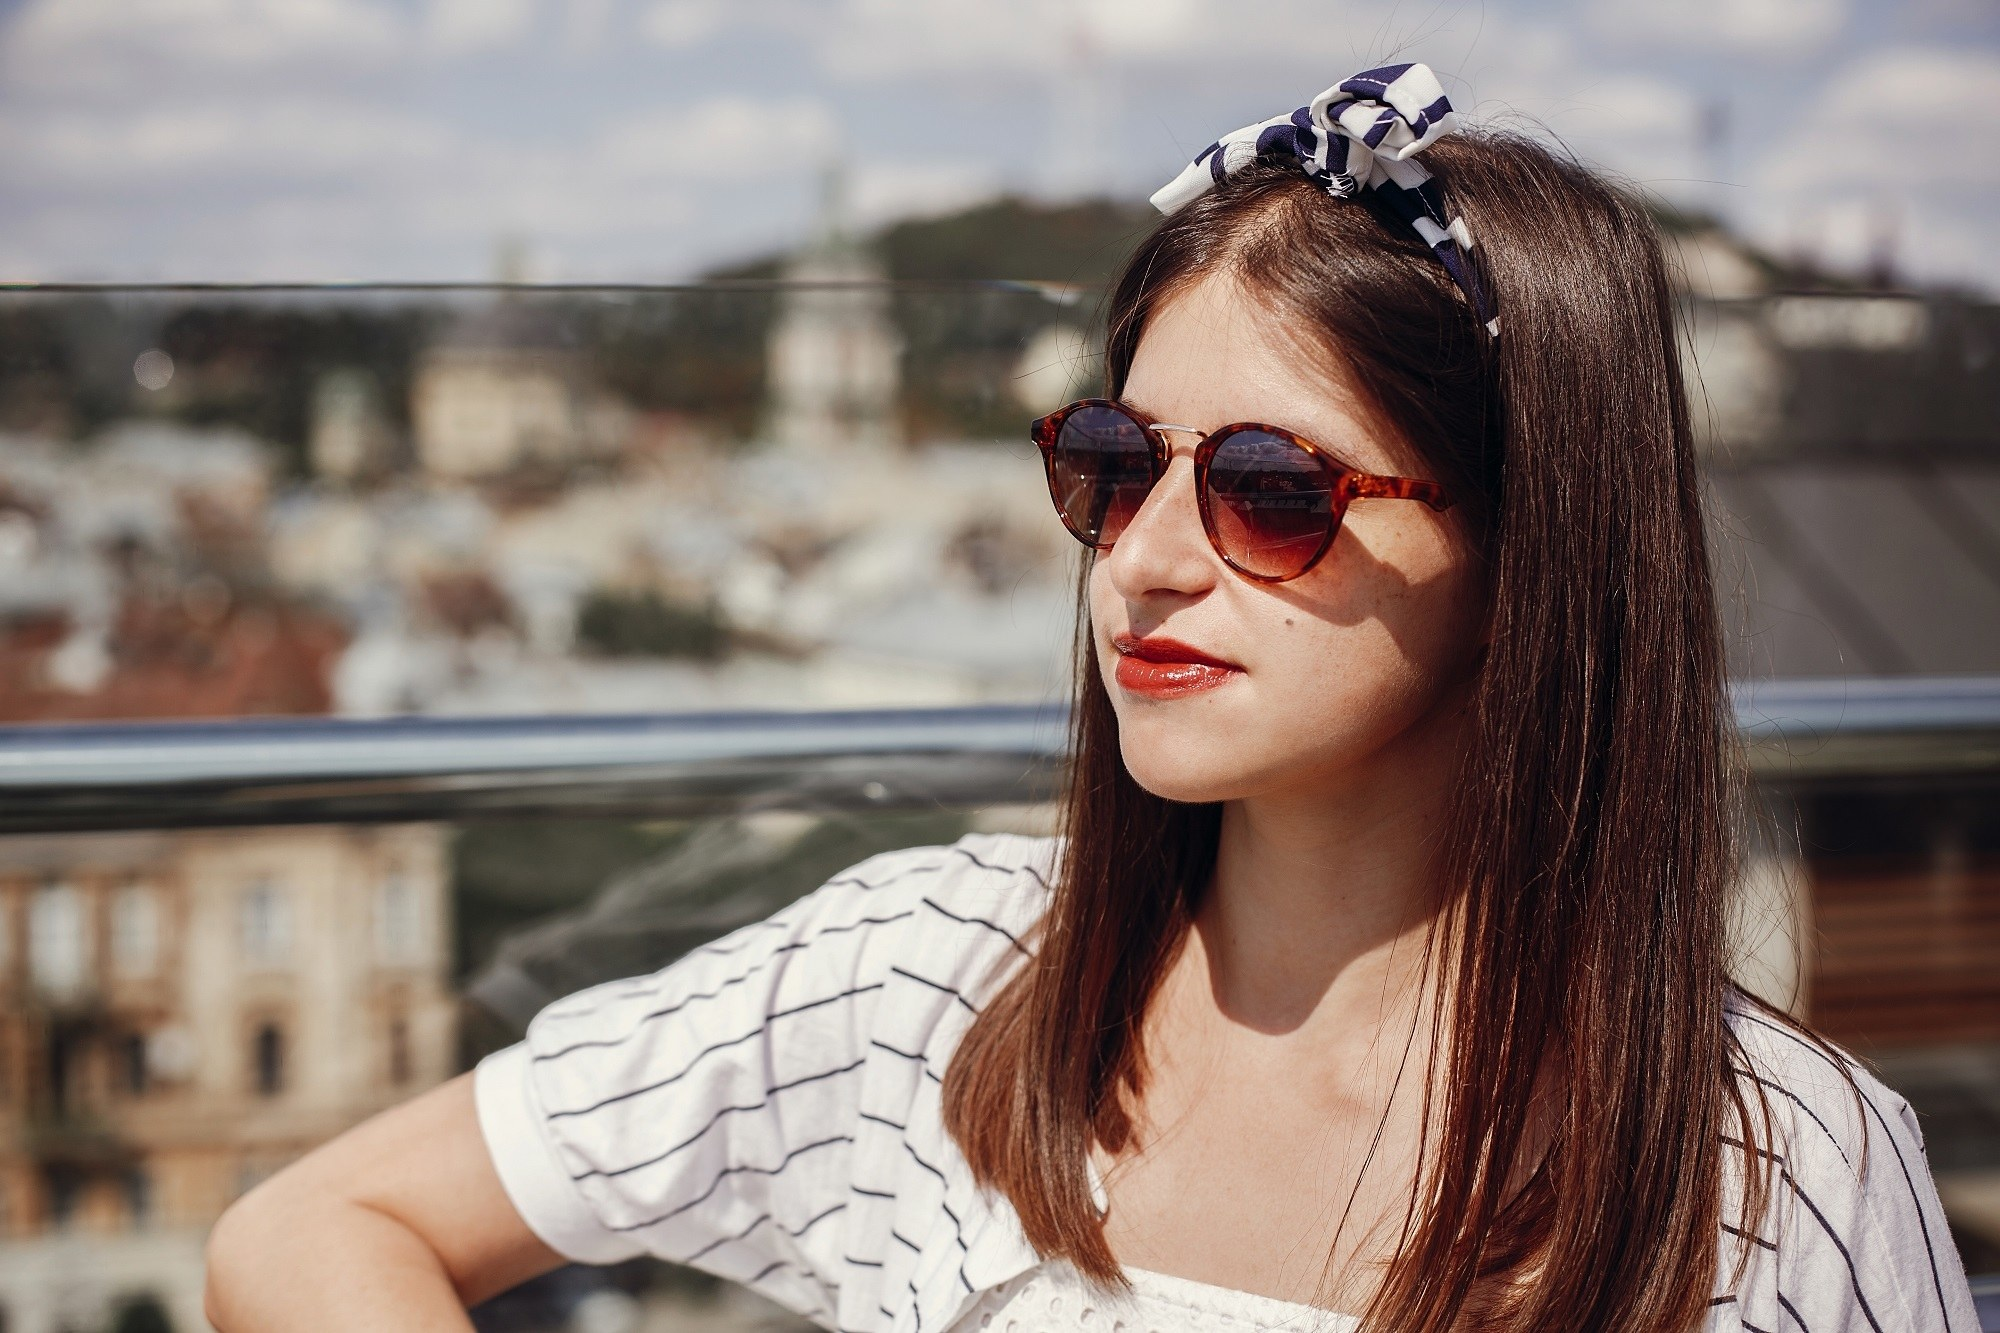 Hair care tips for traveling: Closeup shot of a woman with long dark hair wearing shades and a headband